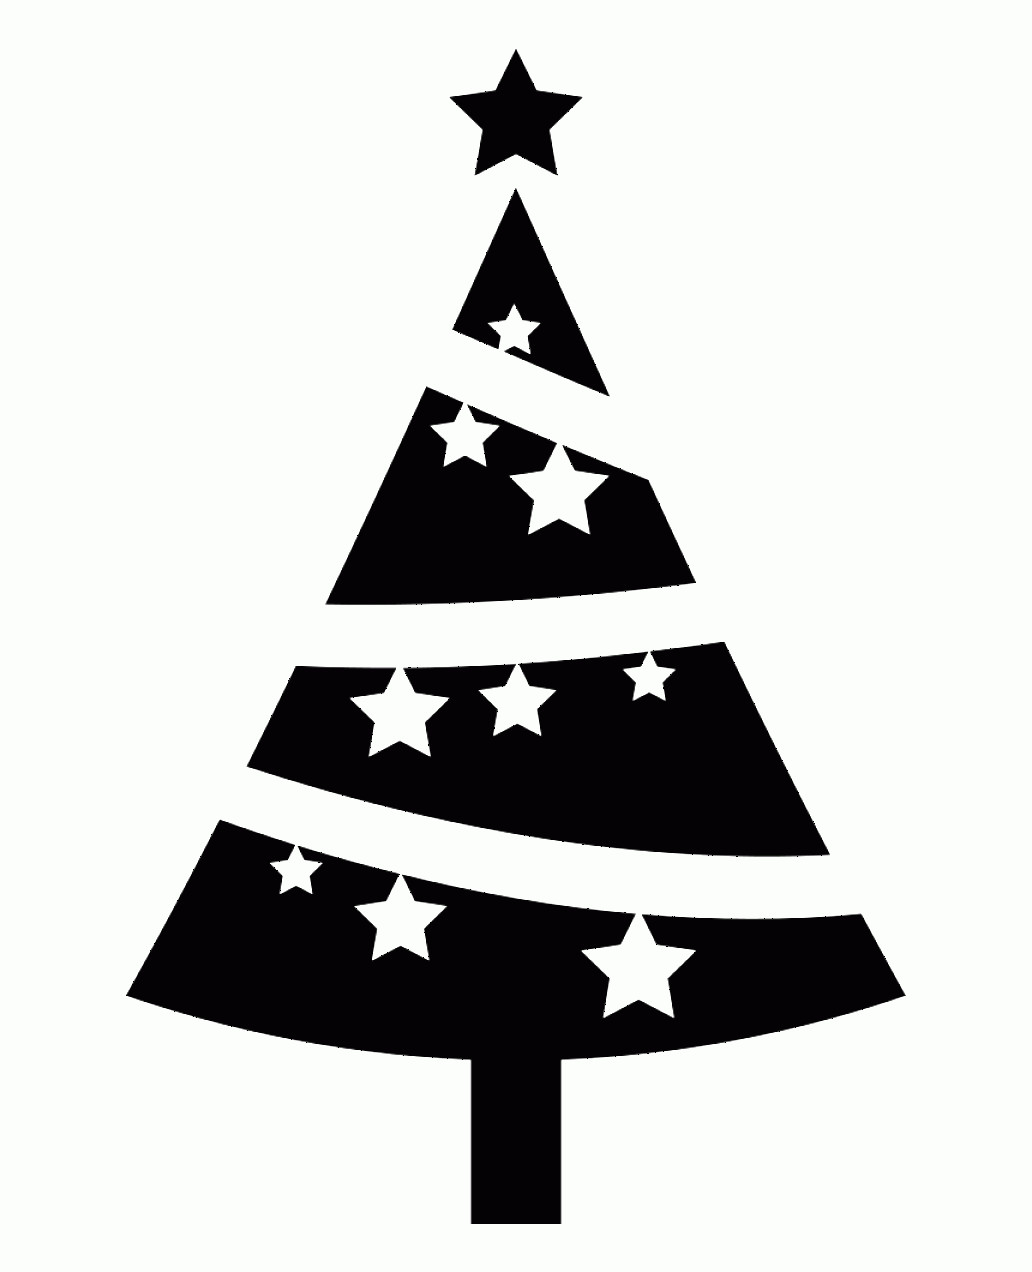 Black And White Christmas Ornament Vector Art: Oworhchristmas Tree Ornamented With Stars Comments Vector White